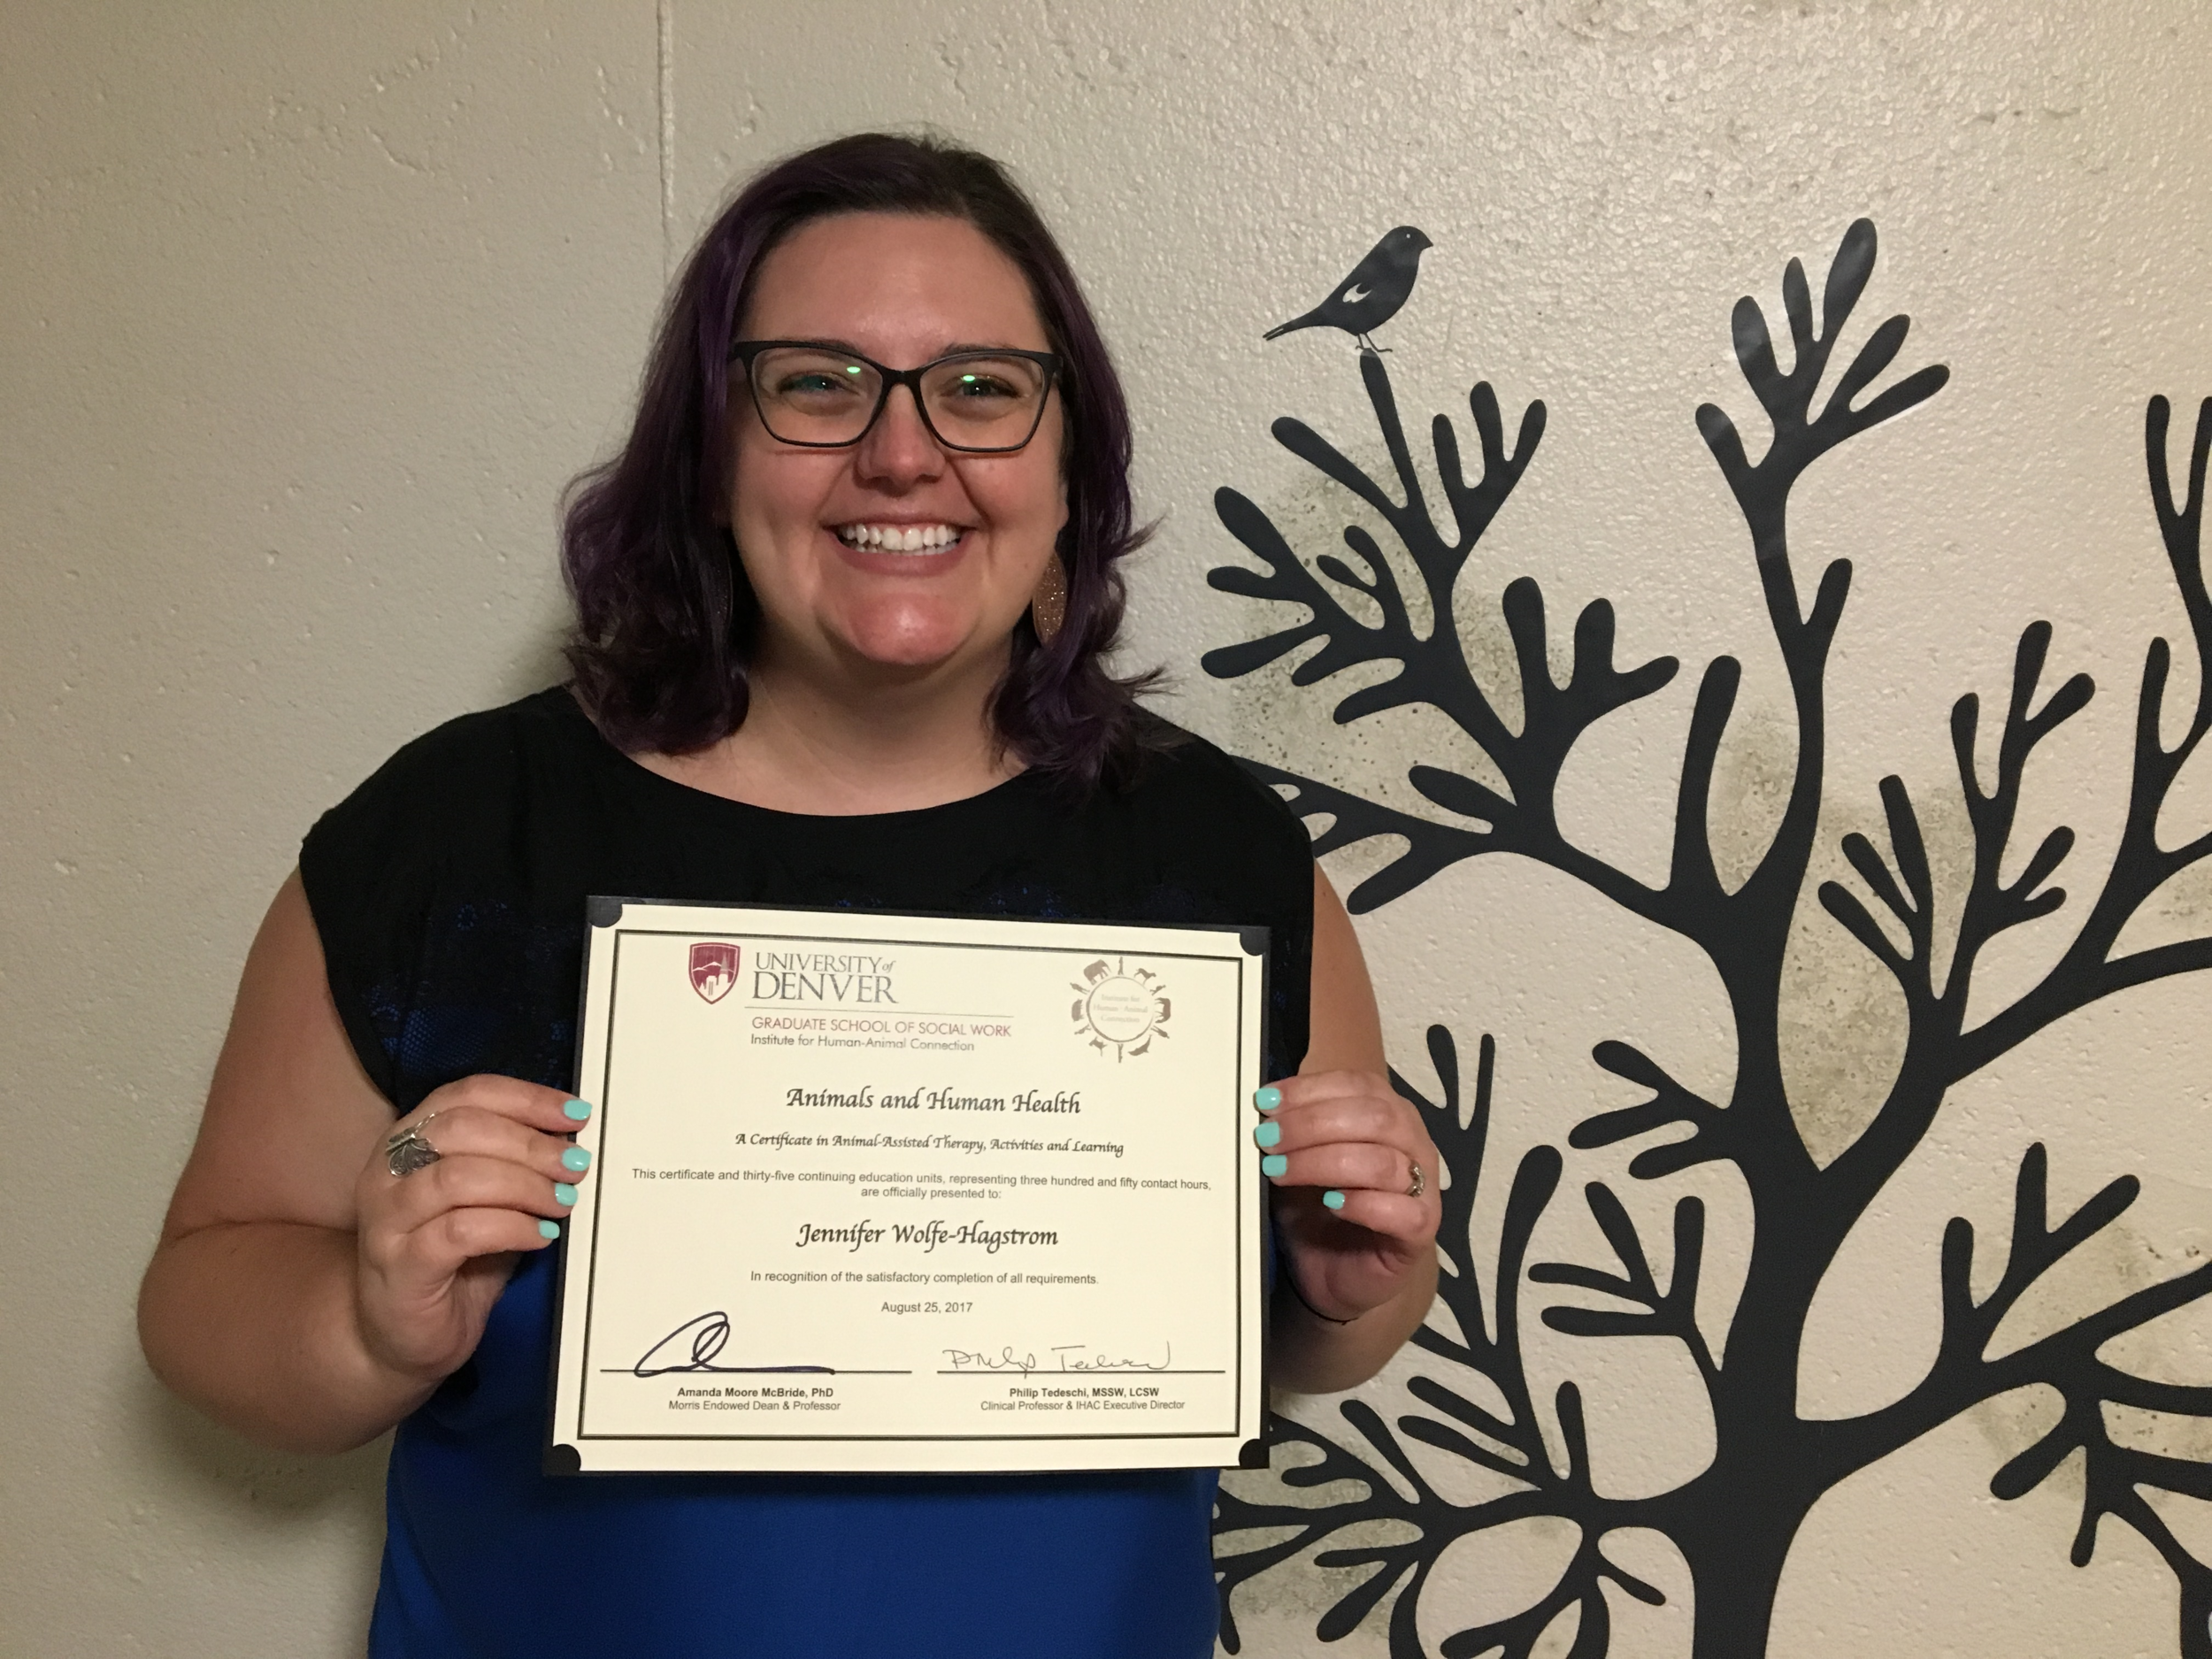 Jennifer earned her certificate in Animals and Human Health from the University of Denver in August 2017